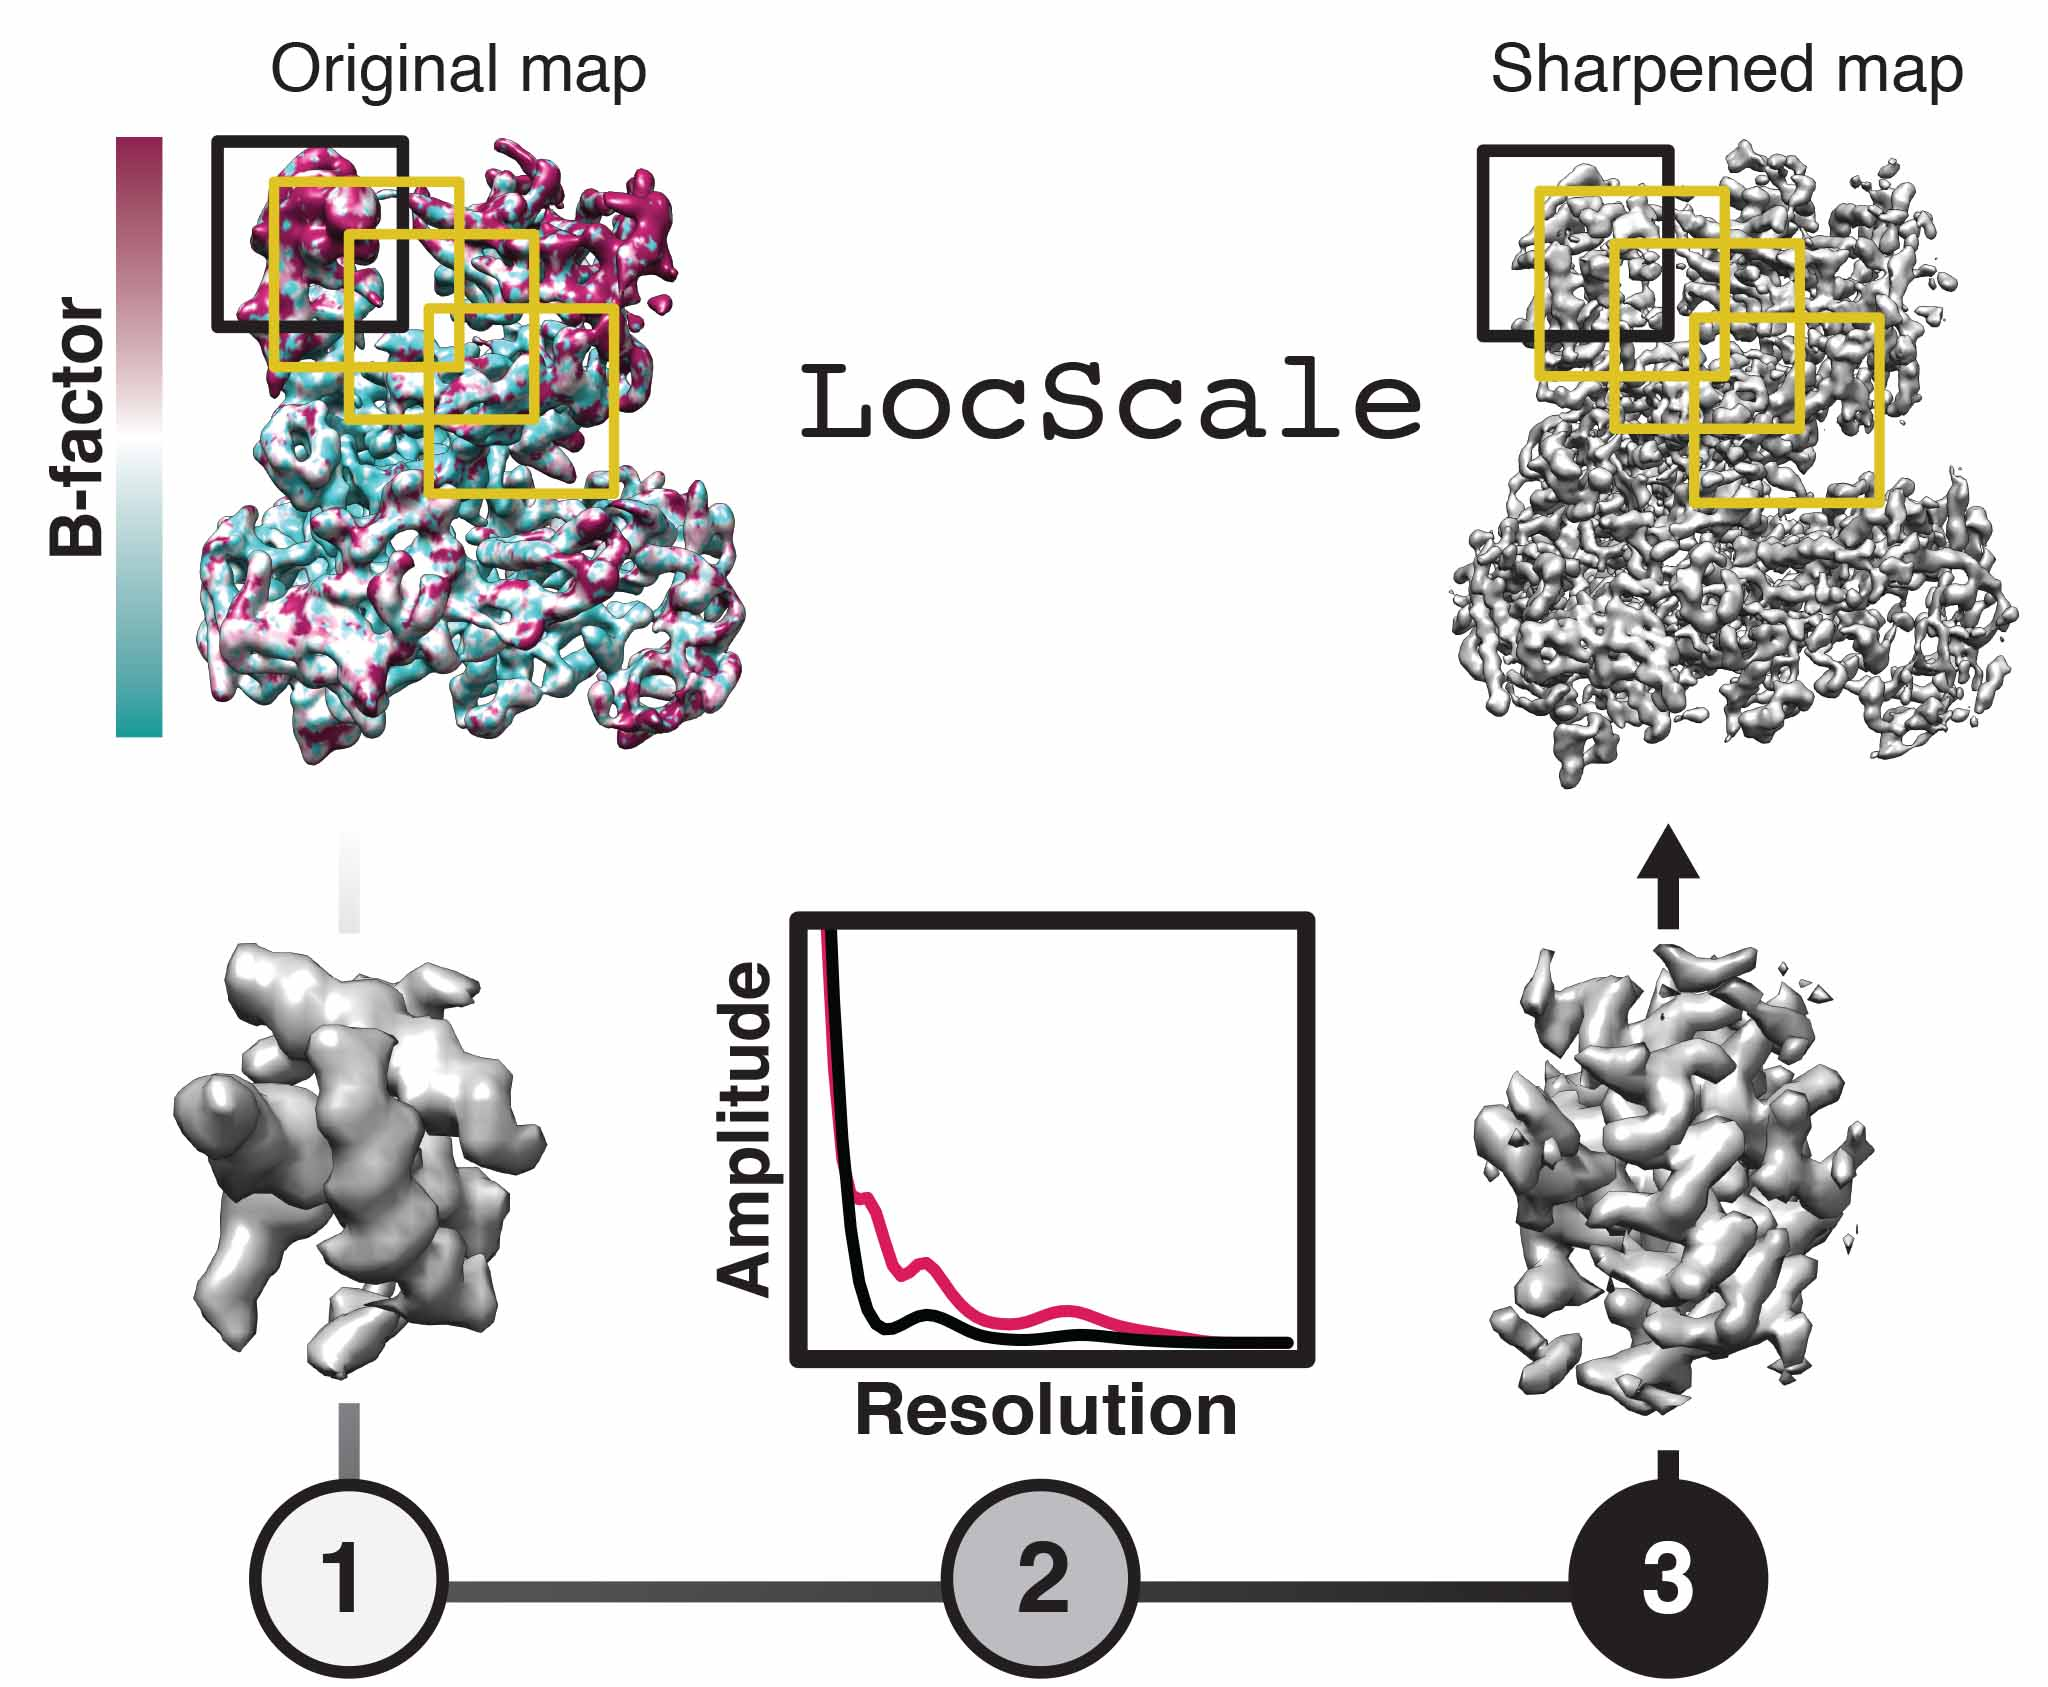 Schematic illustration of the LocScale map sharpening